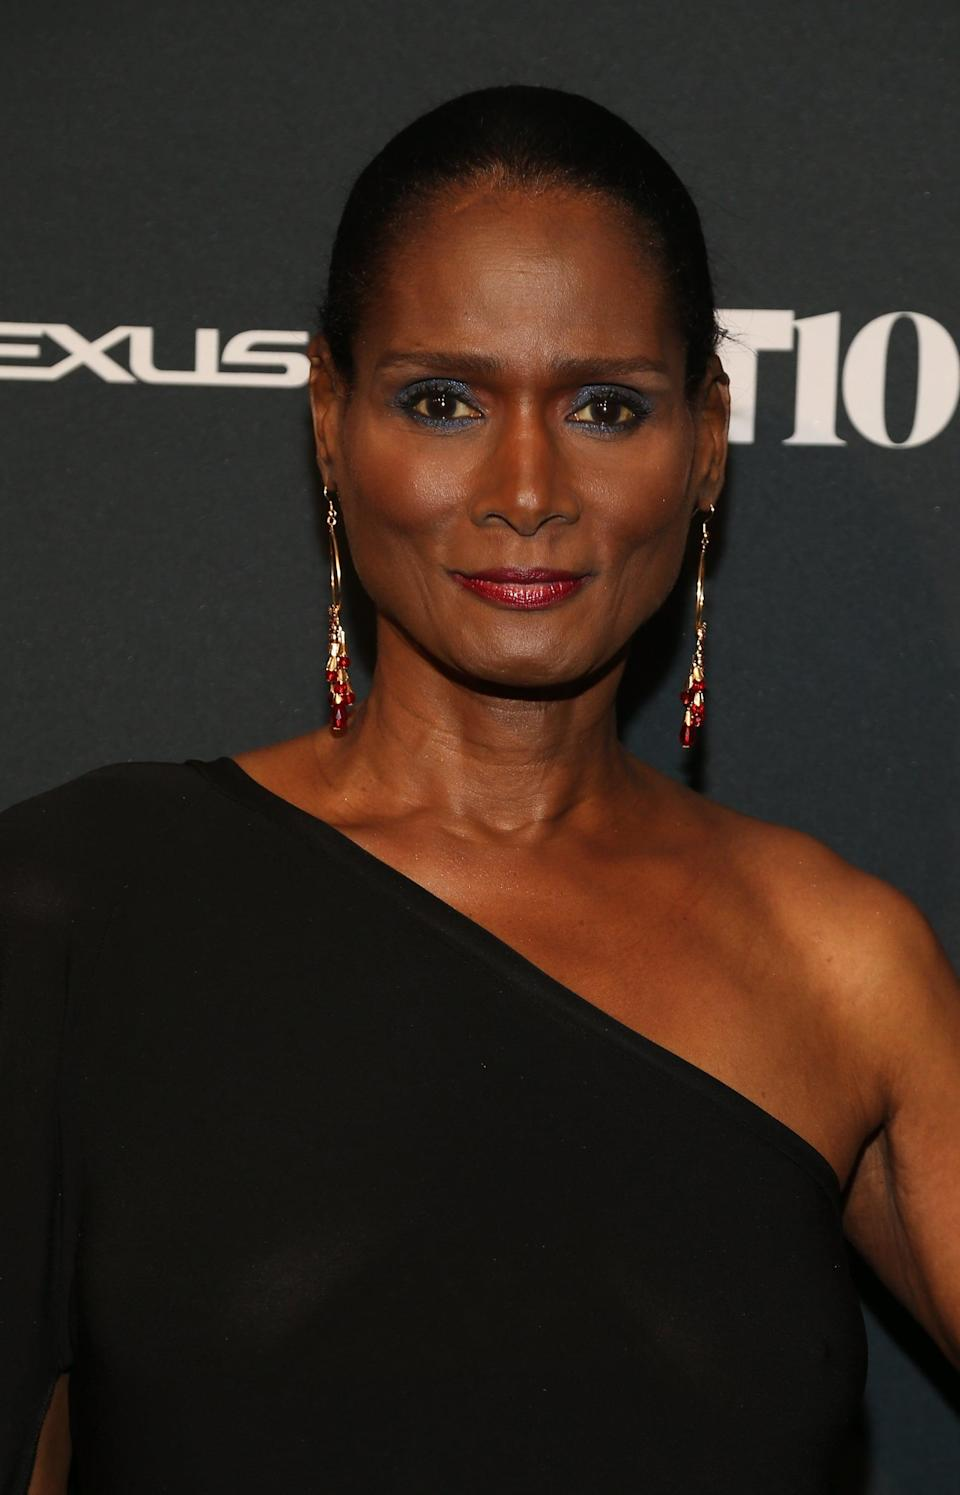 """<p>Tracey Norman was the first Black transgender woman to model. At the start of her career, she didn't disclose her identity and was able to work with publications such as <strong>Essence</strong>, <strong>Vogue Italia</strong>, and <strong>Harper's Bazaar India</strong>. In 1975, she appeared on the box of Clairol's Born Beautiful Hair Colour No.512. The shade was one of Clairol's best sellers at the time. In 1980, the truth about her birth gender was discovered by a hairdresser while on a photoshoot. The hairdresser publicly outed her and as a result, companies refused to work with her. After years struggling to find work, Norman became an active figure in the drag ball community.</p> <p>In 2015, Norman became the subject of a biographical piece <a href=""""https://www.thecut.com/2015/12/tracey-africa-transgender-model-c-v-r.html"""" class=""""link rapid-noclick-resp"""" rel=""""nofollow noopener"""" target=""""_blank"""" data-ylk=""""slk:written by digital fashion site The Cut"""">written by digital fashion site <strong>The Cut</strong></a>. The following year, Clairol signed her up as the face of their 'Nice 'n Easy Color As Real As You Are' campaign. Norman later became one of two openly transgender models to appear on the cover of <strong>Harpers Bazaar</strong>.</p> <p>Although her true status remained undetected for some time, it took a lot of courage for Norman to enter the world of modeling, especially at a time when transgender people weren't accepted in society. As attitudes towards the LGBT community have now thankfully changed, the revitalization of Norman's career was well overdue.</p>"""